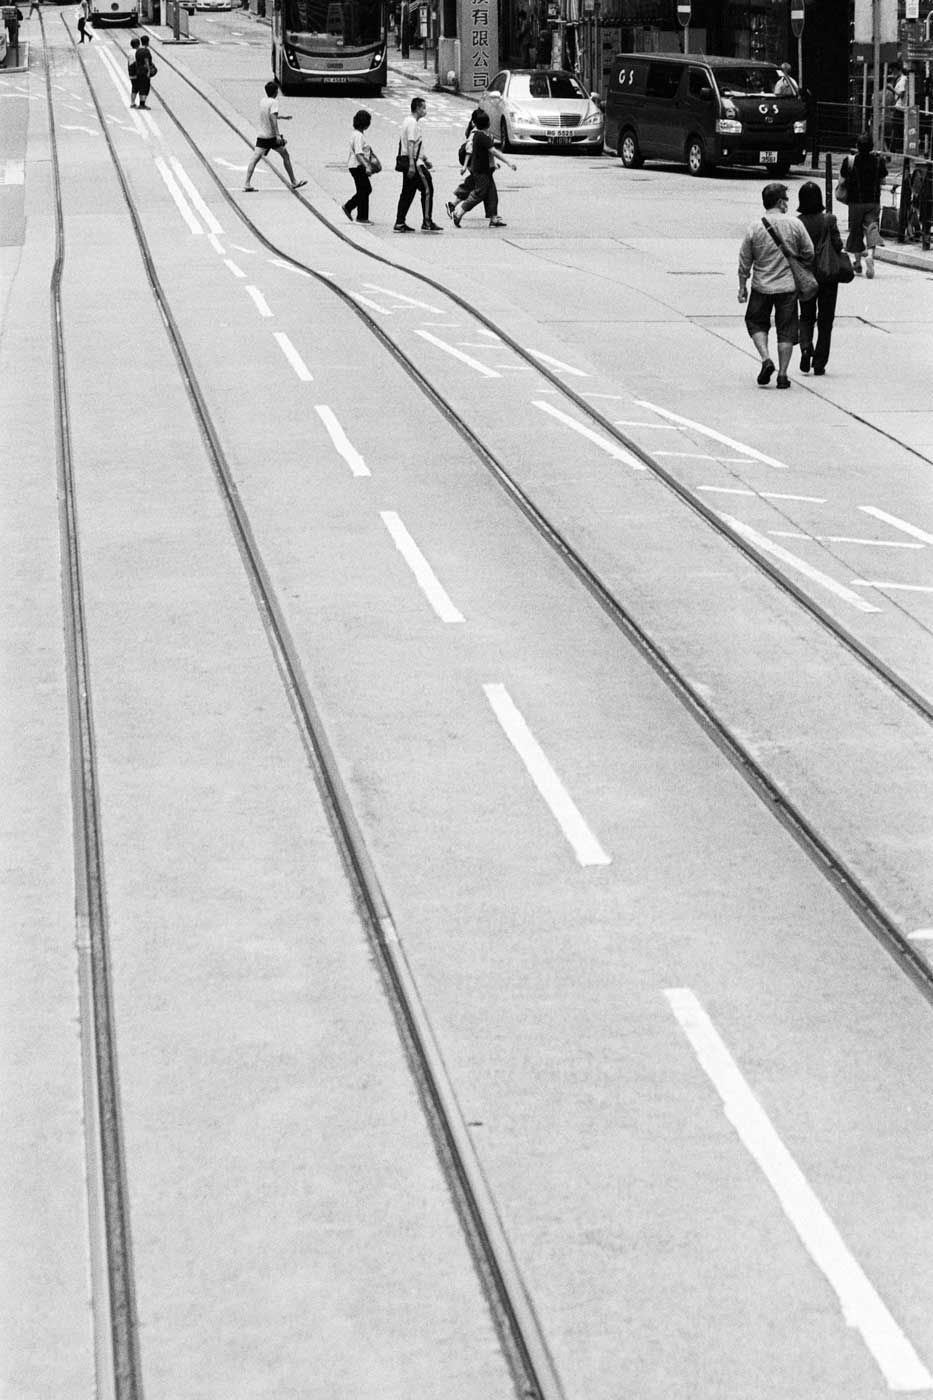 Top-5-five-bw-black-and-white-film-films-recommend-pick-selection-negative-photography-camera-start-beginner-guide-kodak-eastman-double-x-5222-hong-kong-tram-rail